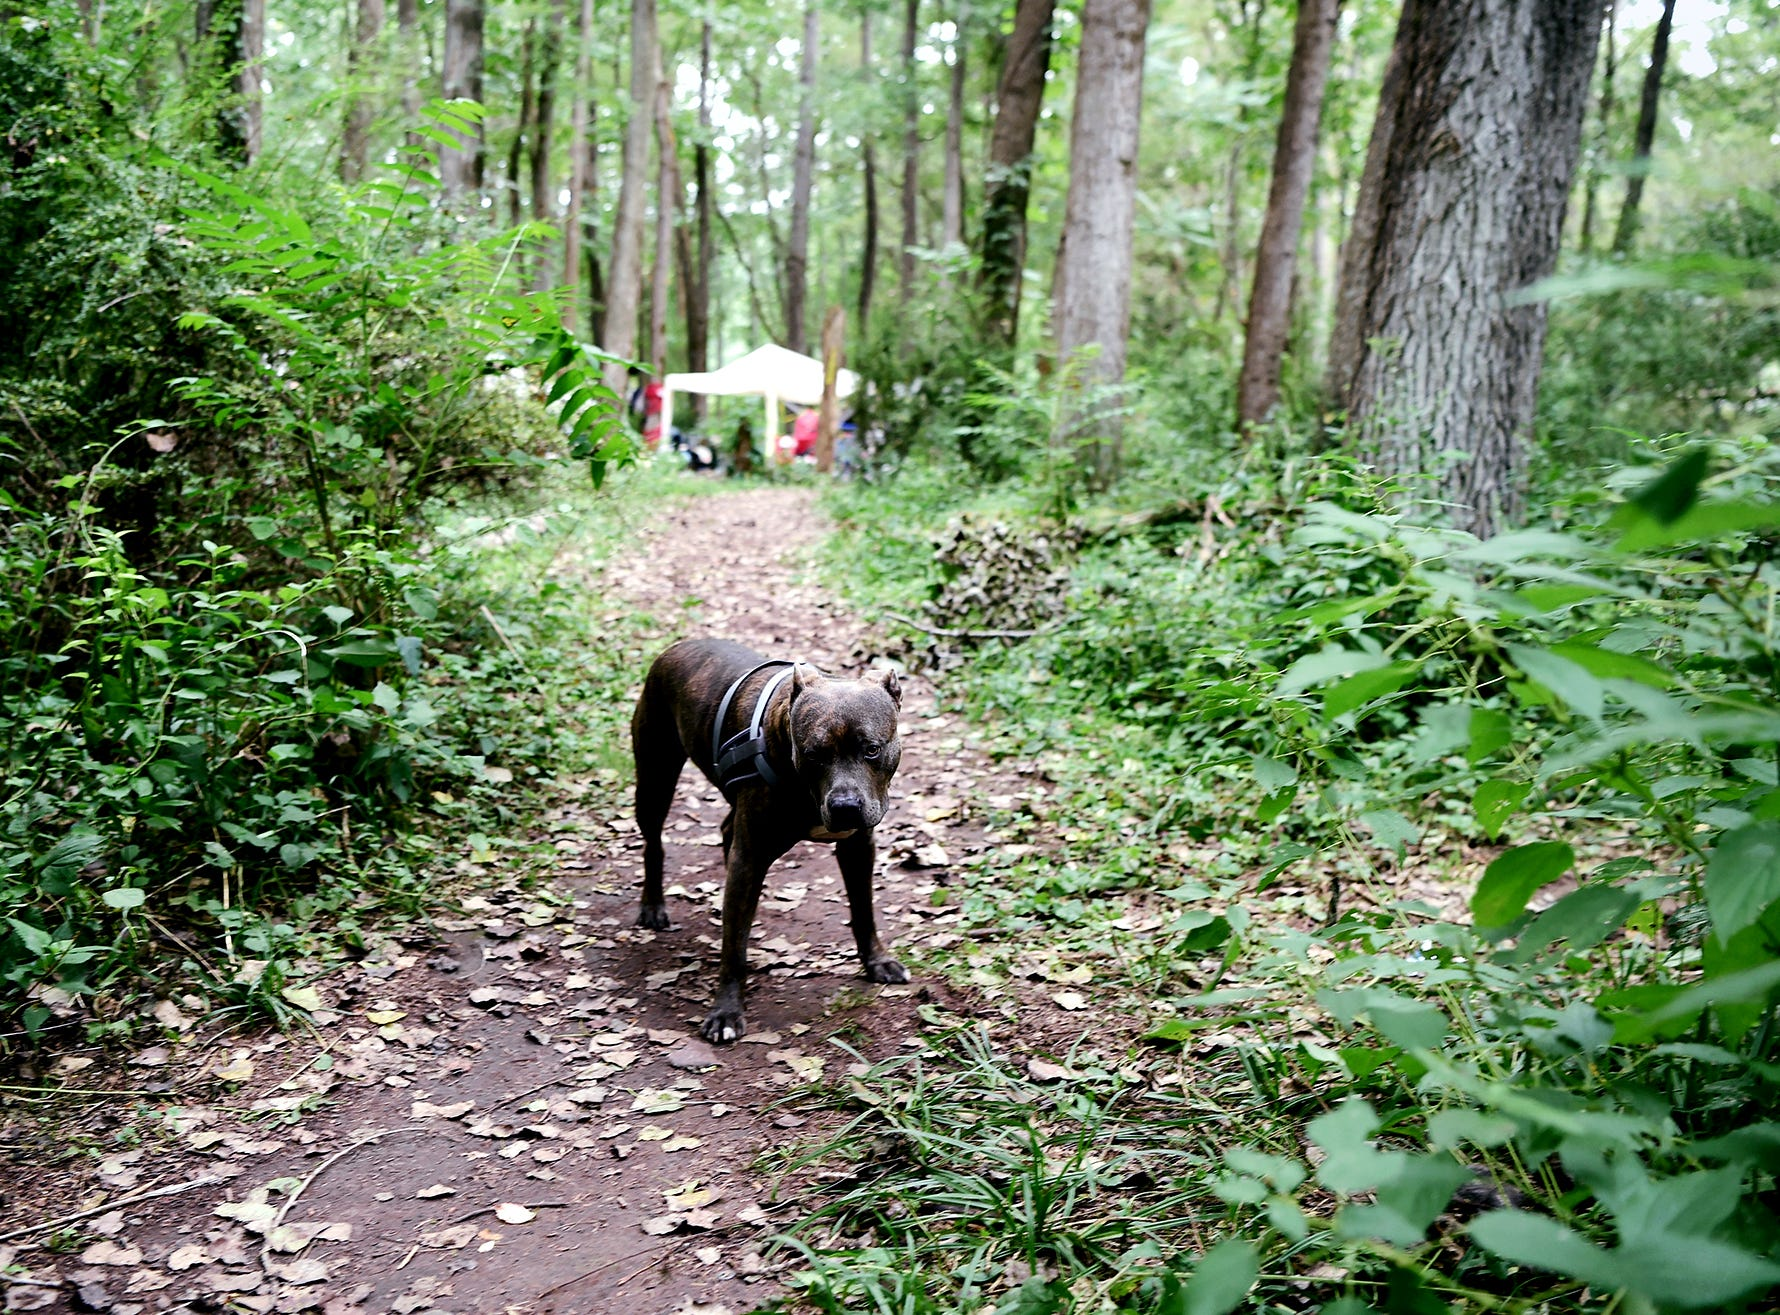 A canine resident of The Jungle in Ithaca on August 31, 2018.